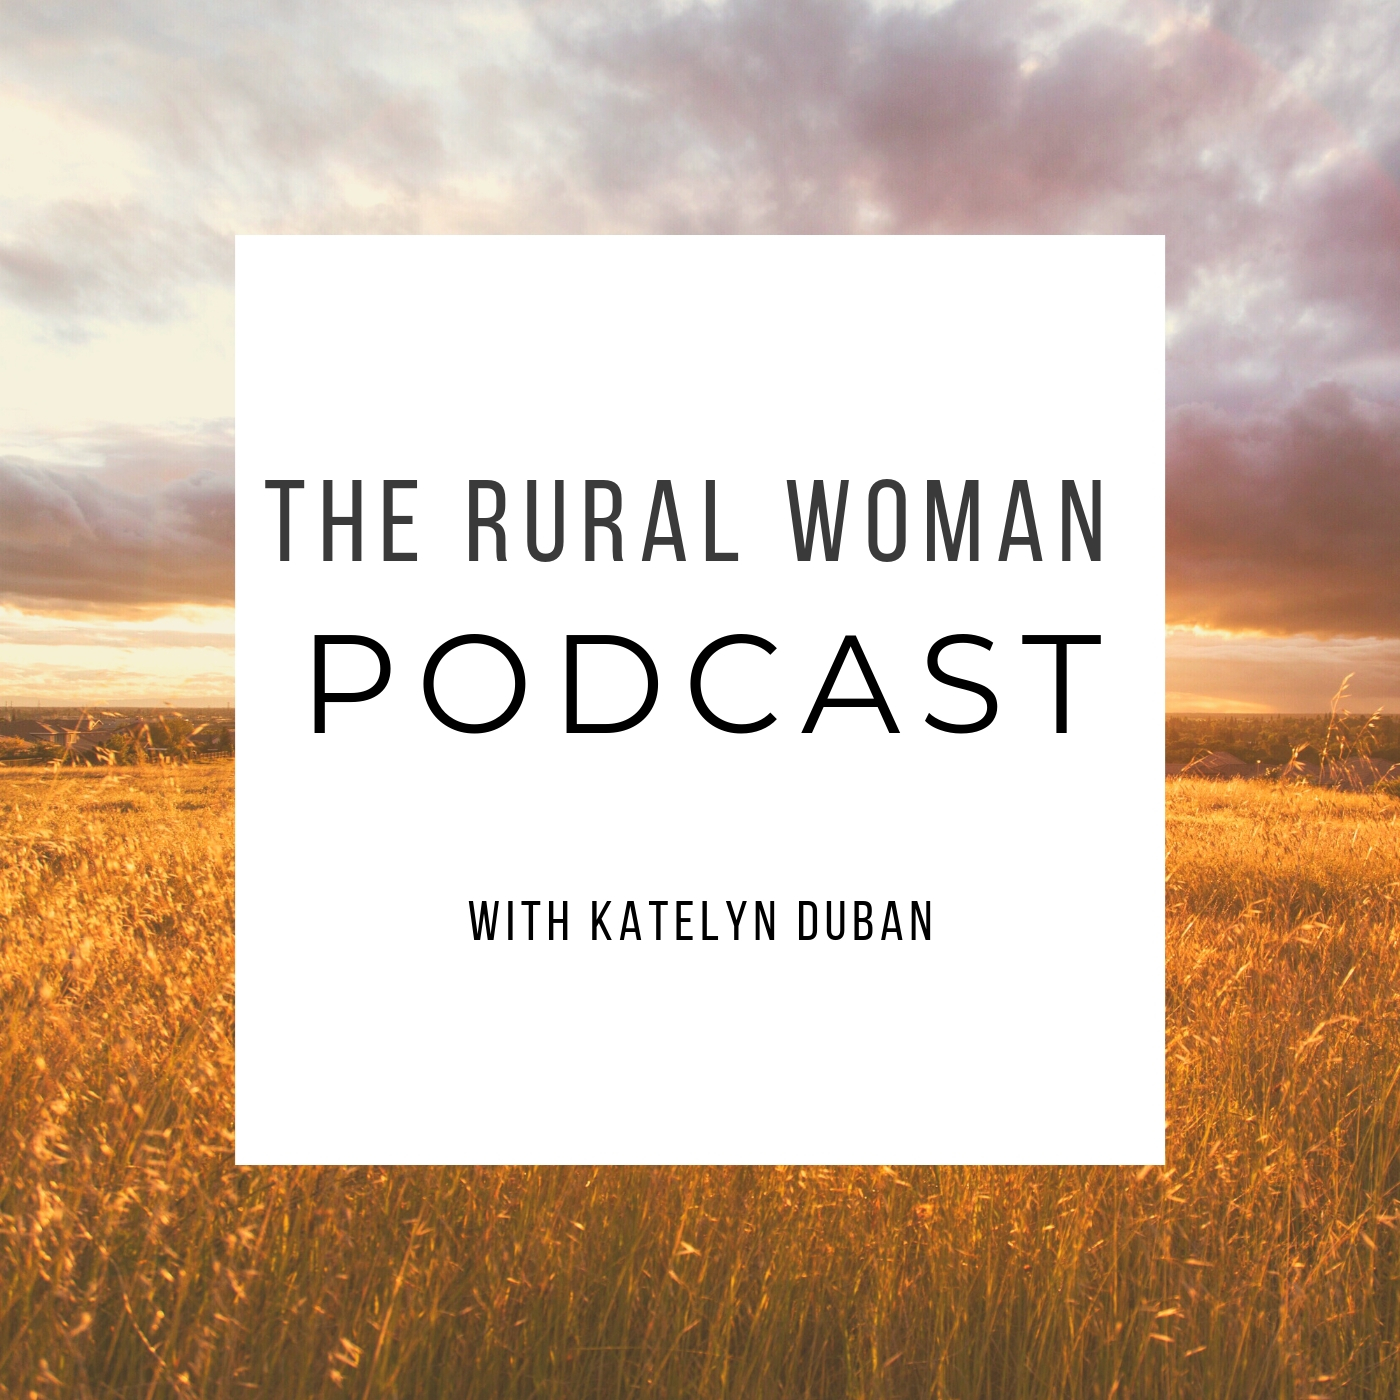 The Rural Woman Podcast show art